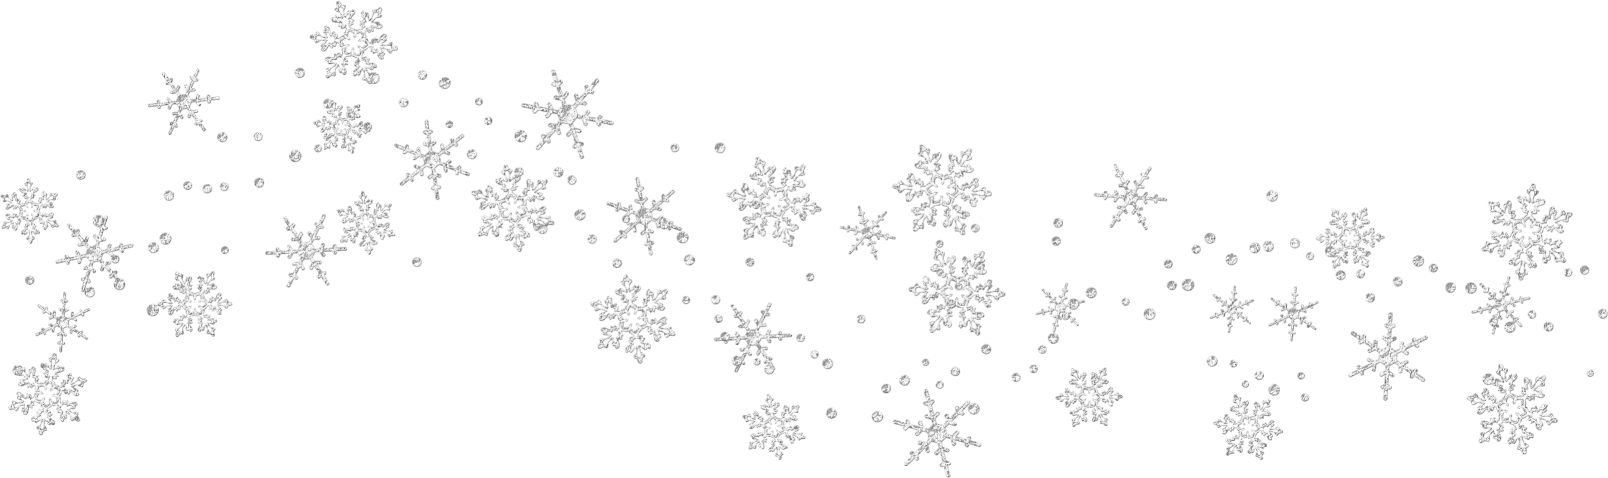 vector library Snow flakes snowflakes transparent. Snowflake borders clipart